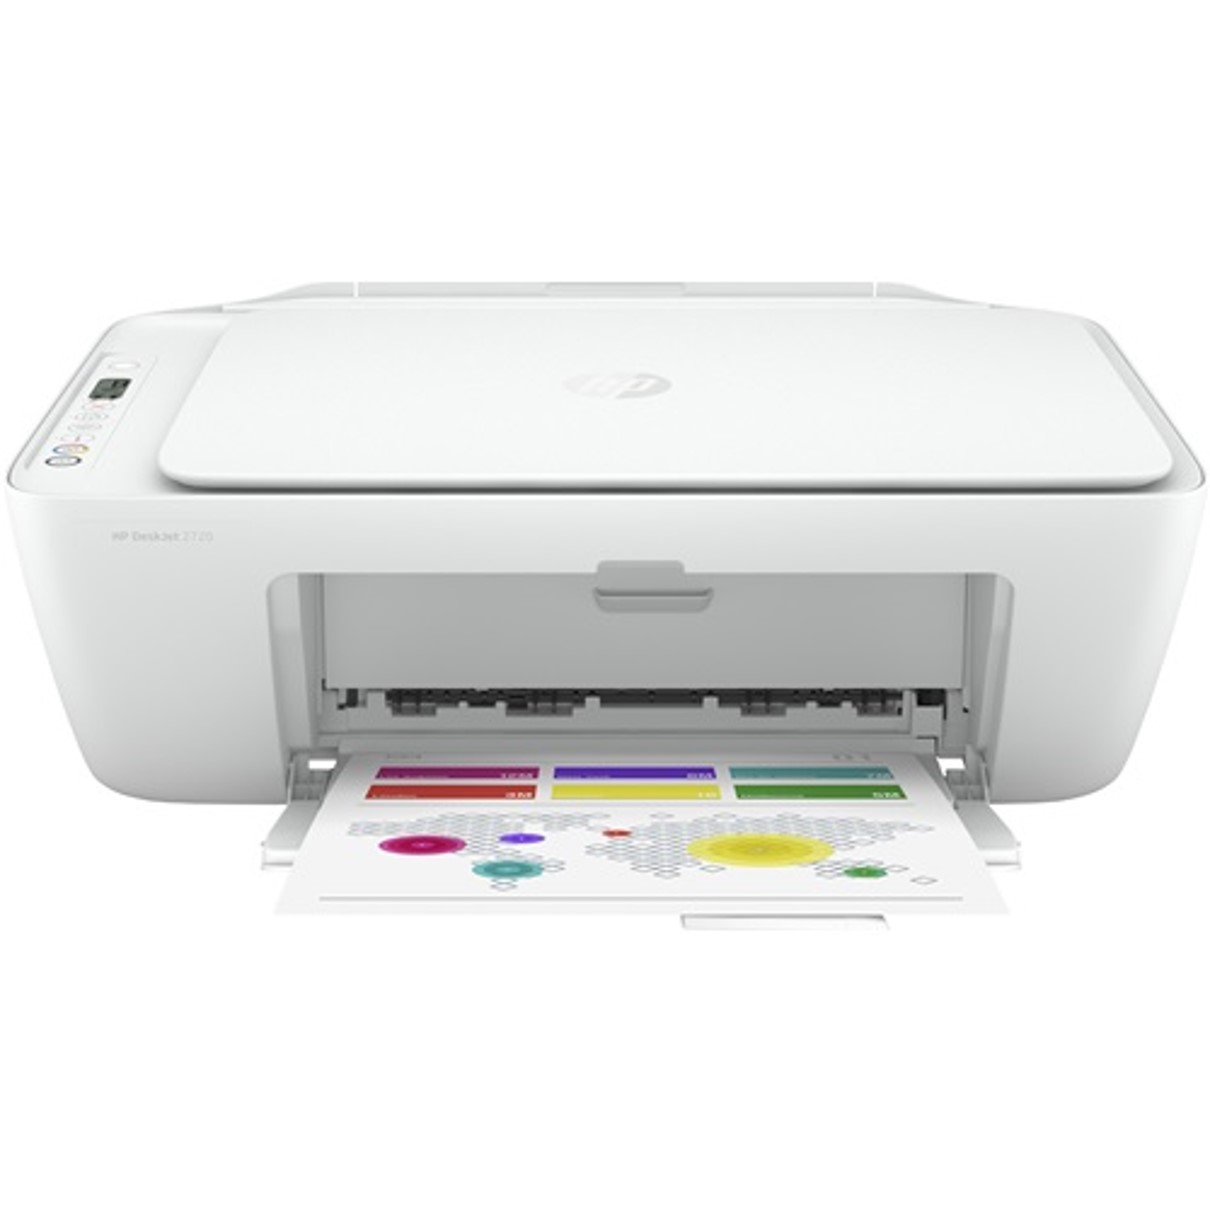 Multifuncion Hp Inyeccion Color Deskjet 2720 A4/ 7.5ppm/ Usb/ Wifi 0.0